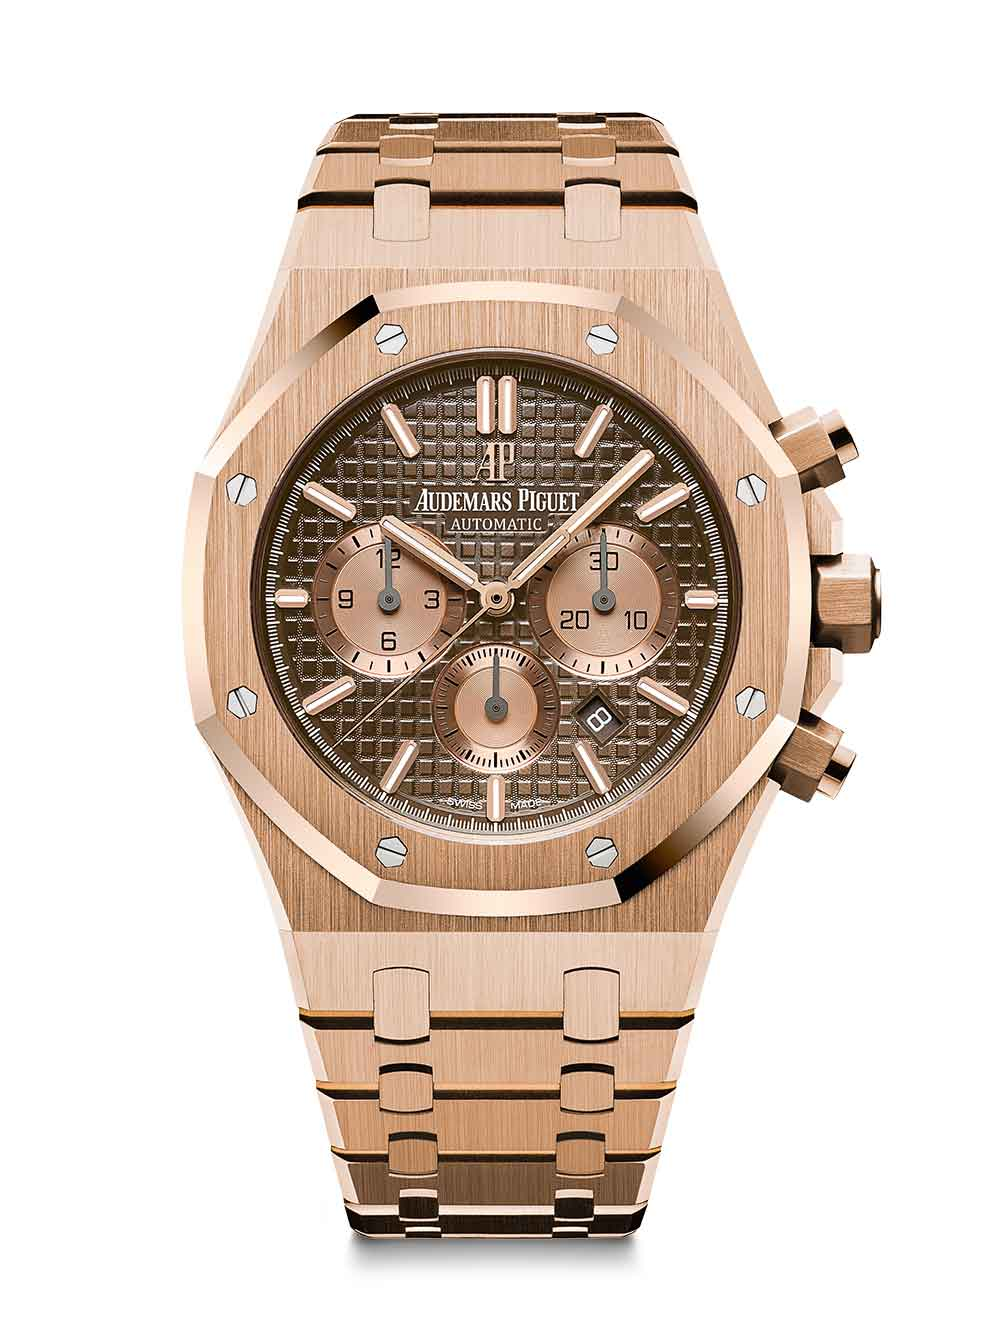 Royal Oak Chronograph, pink gold, brown dial, pink gold bracelet, reference 26331OR.OO.1220OR.02